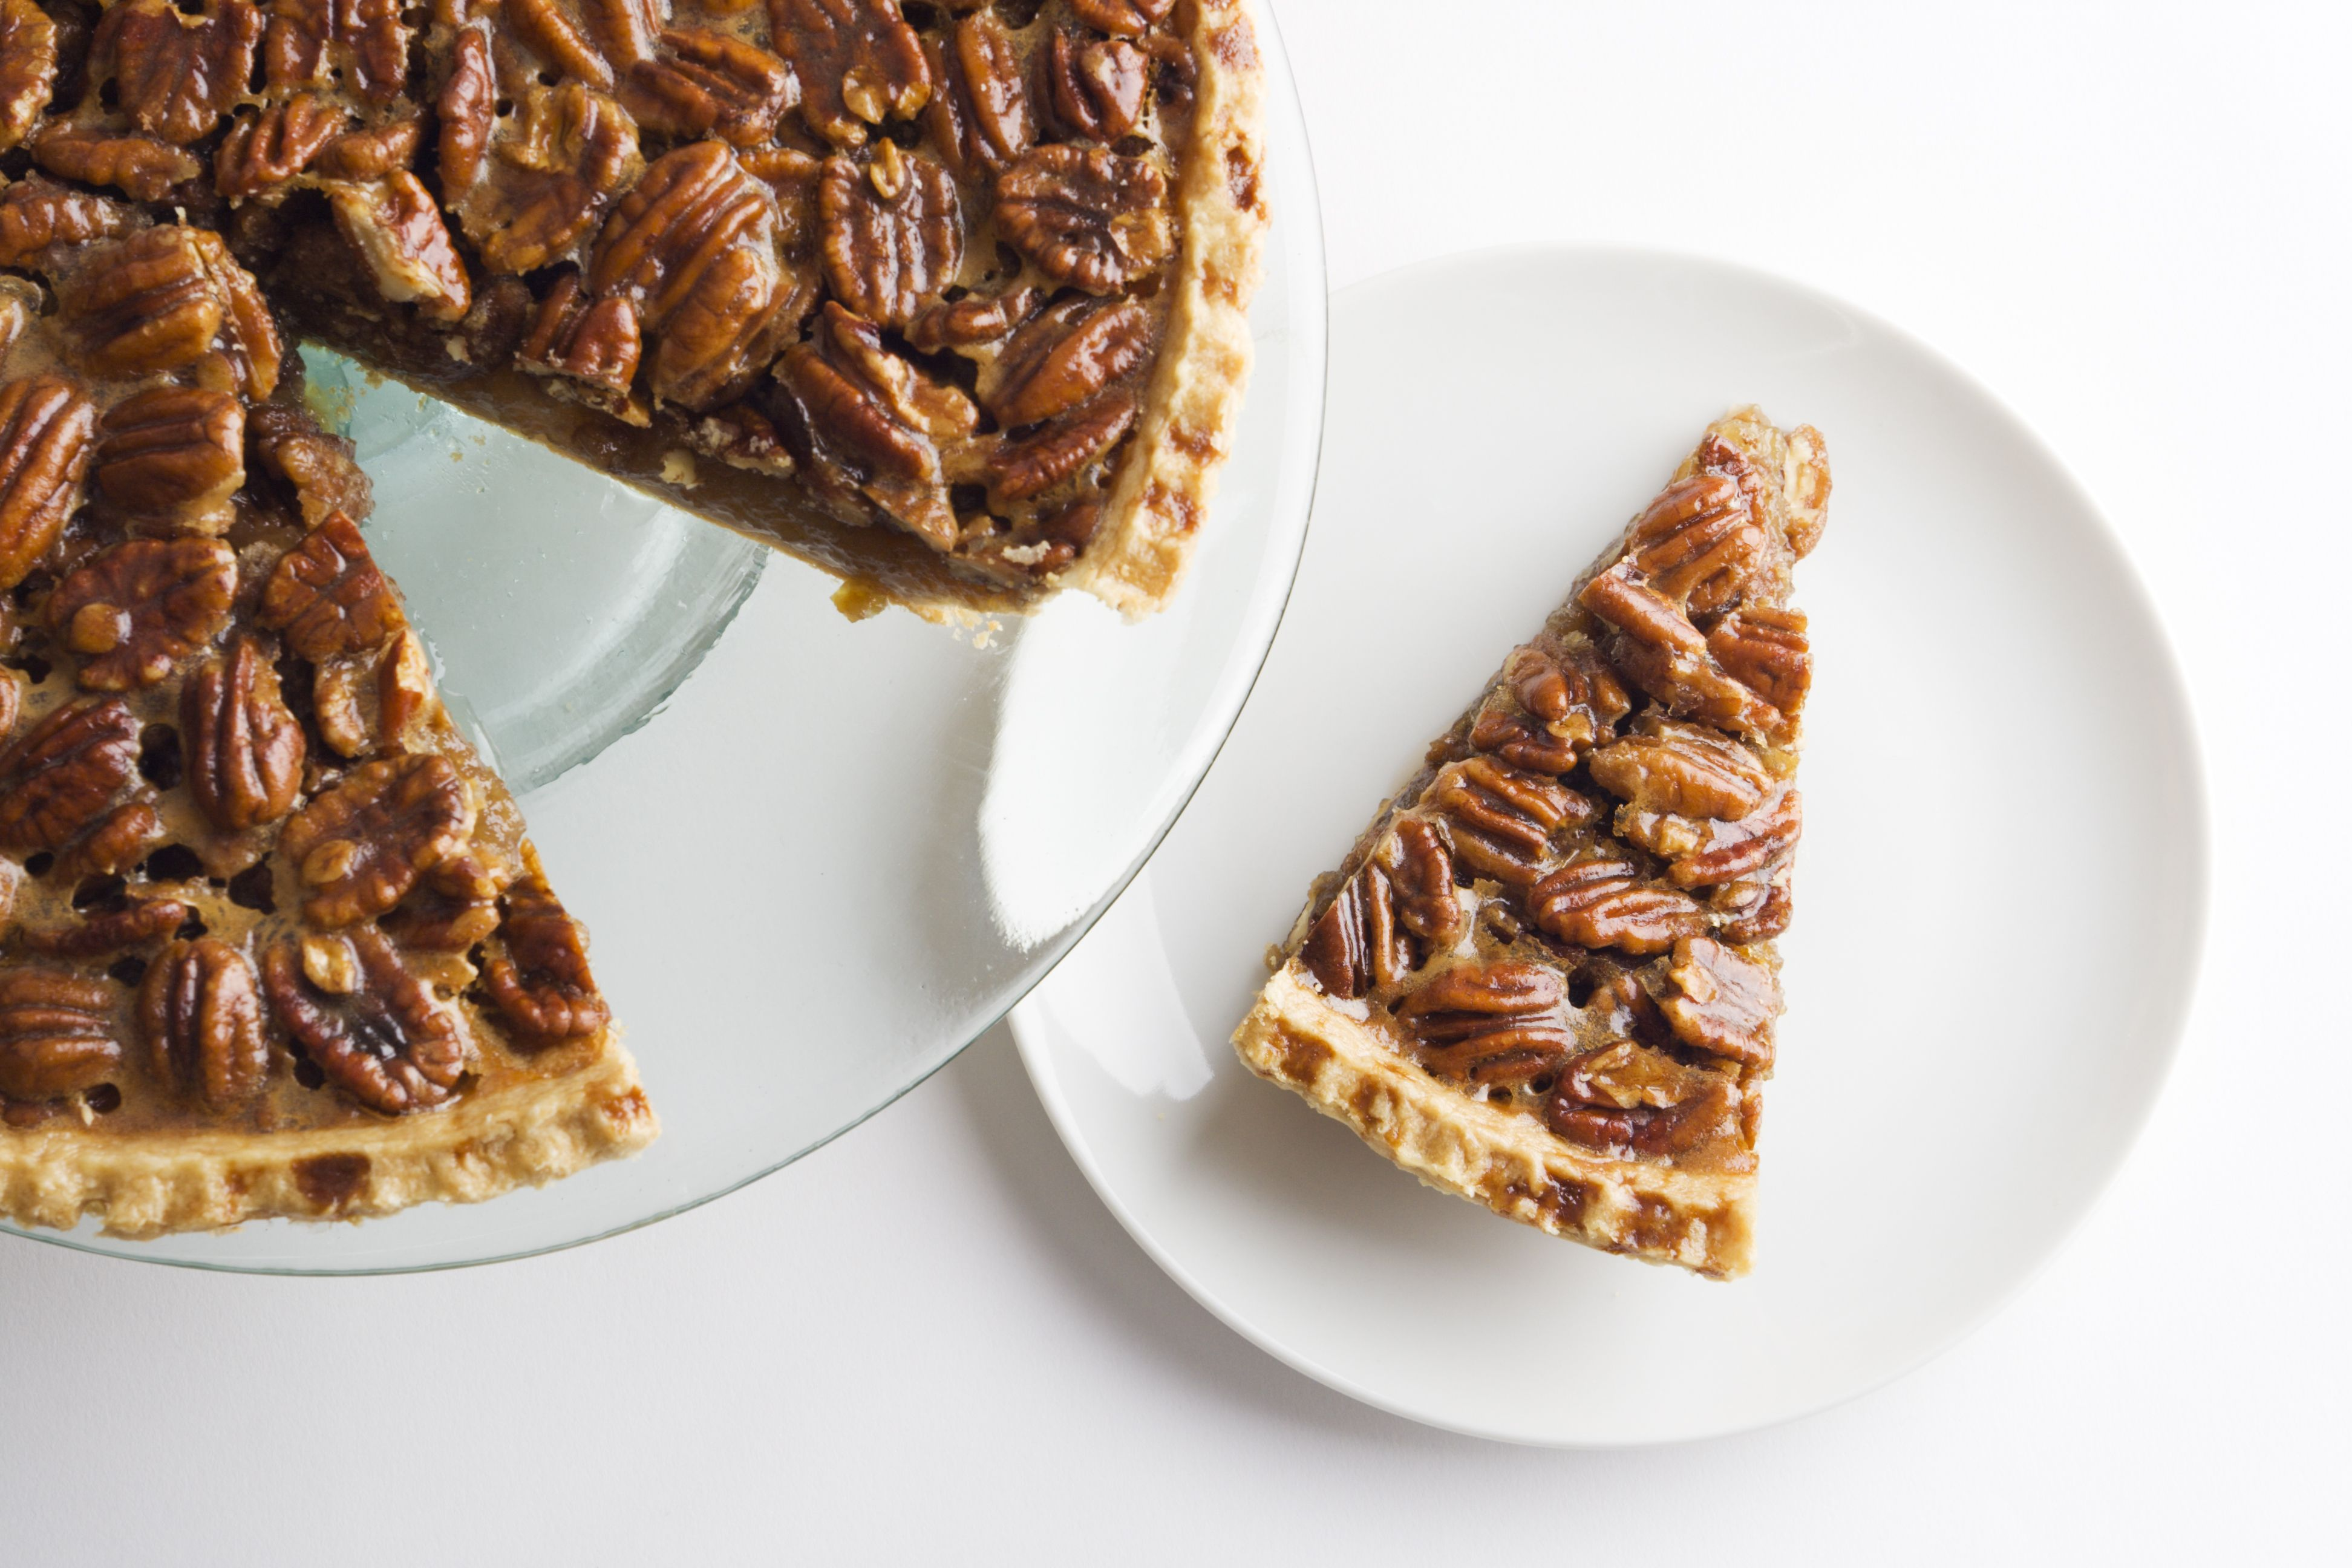 100+ Easy Pie Recipes from Scratch - How to Make Homemade Pie